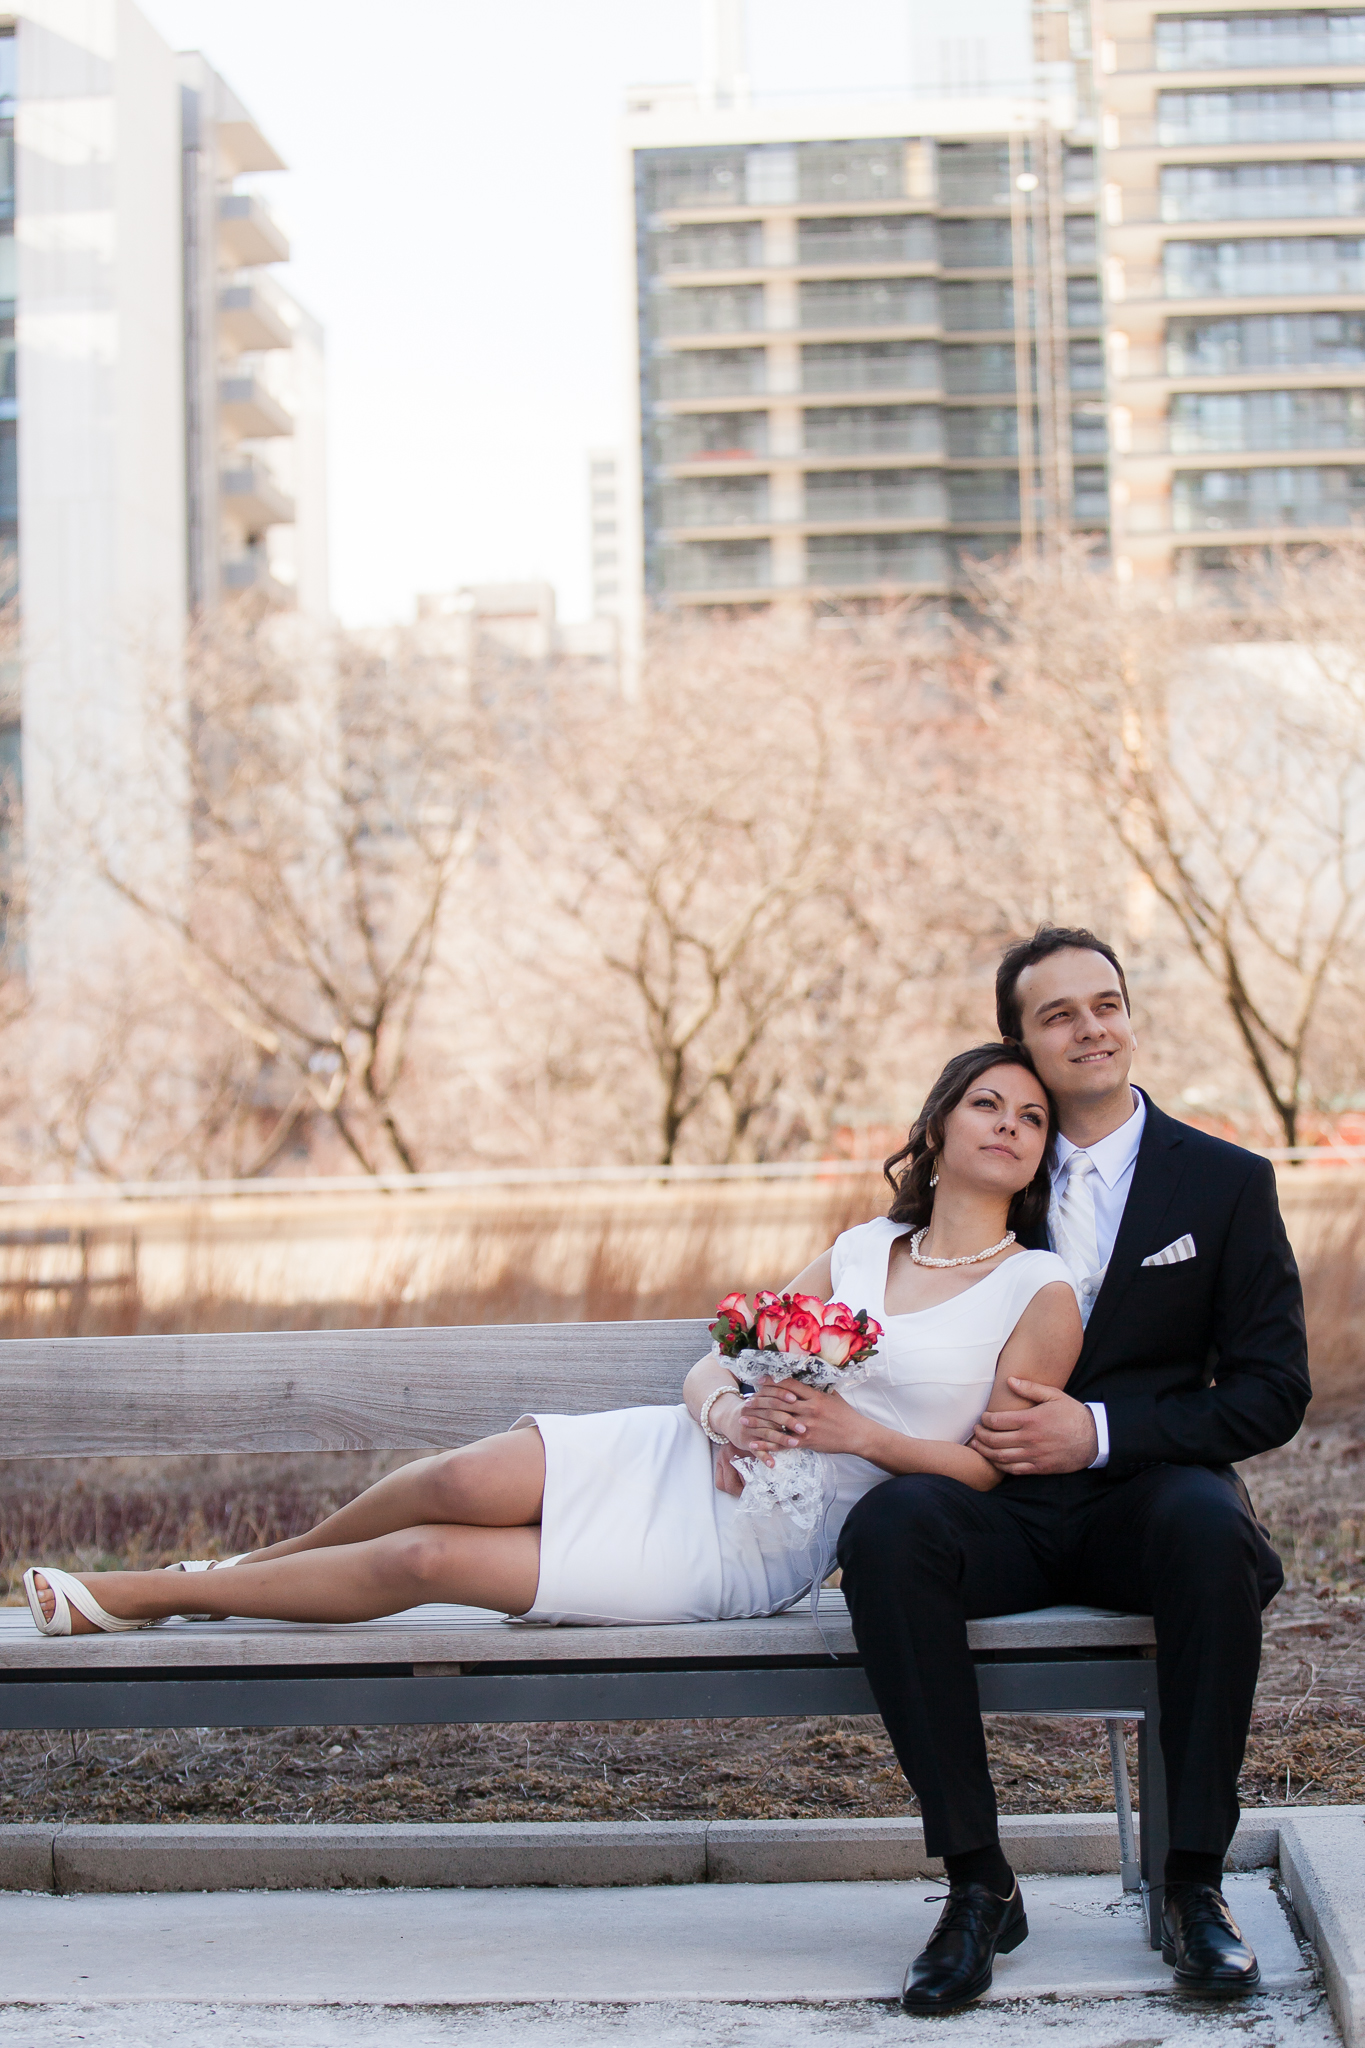 Toronto Wedding Photography - Zoya & Alexei -3.jpg